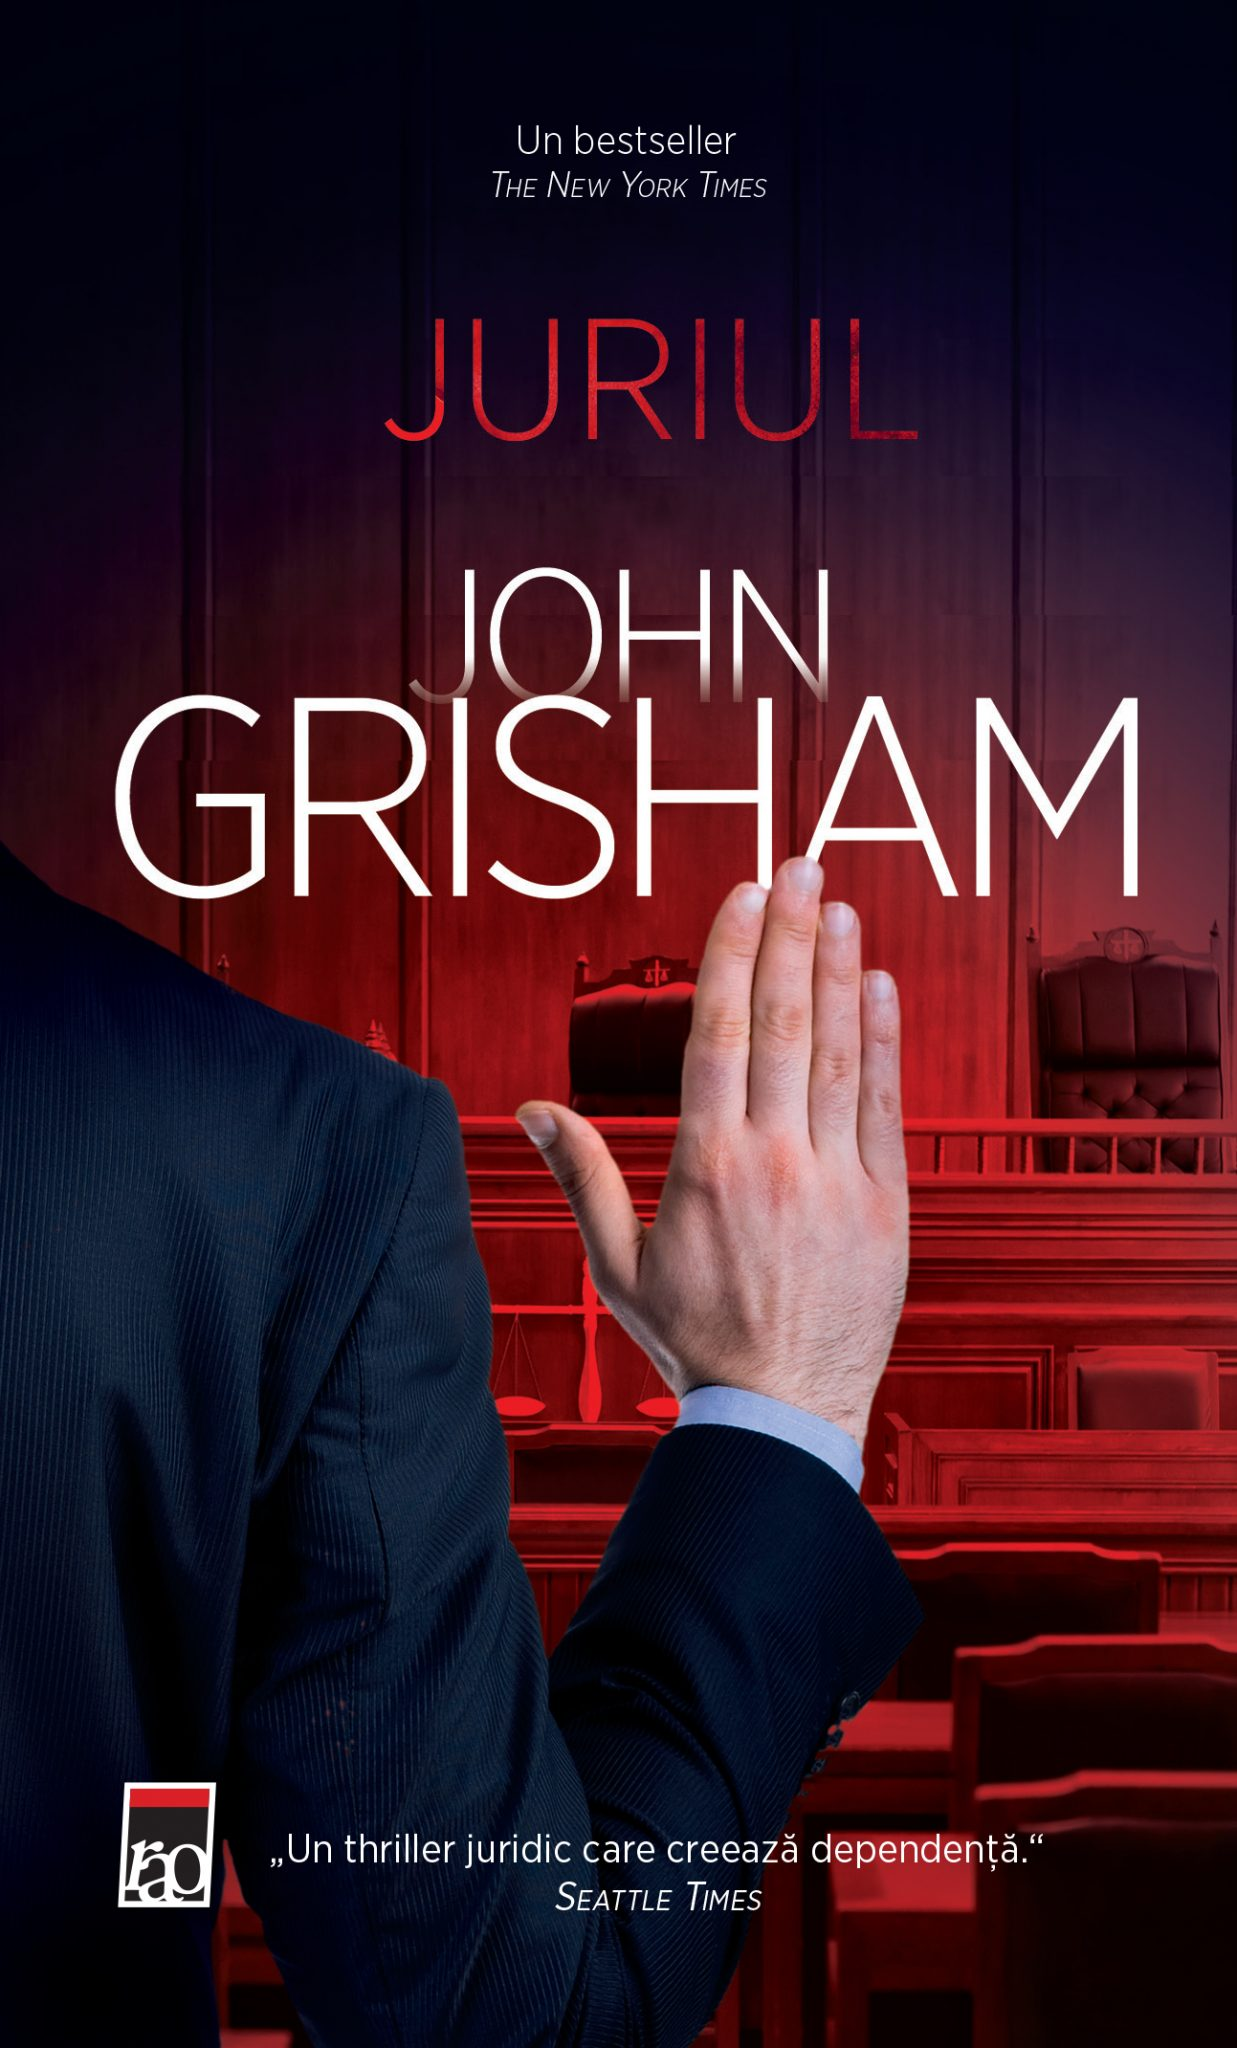 Imagine Juriul - John Grisham